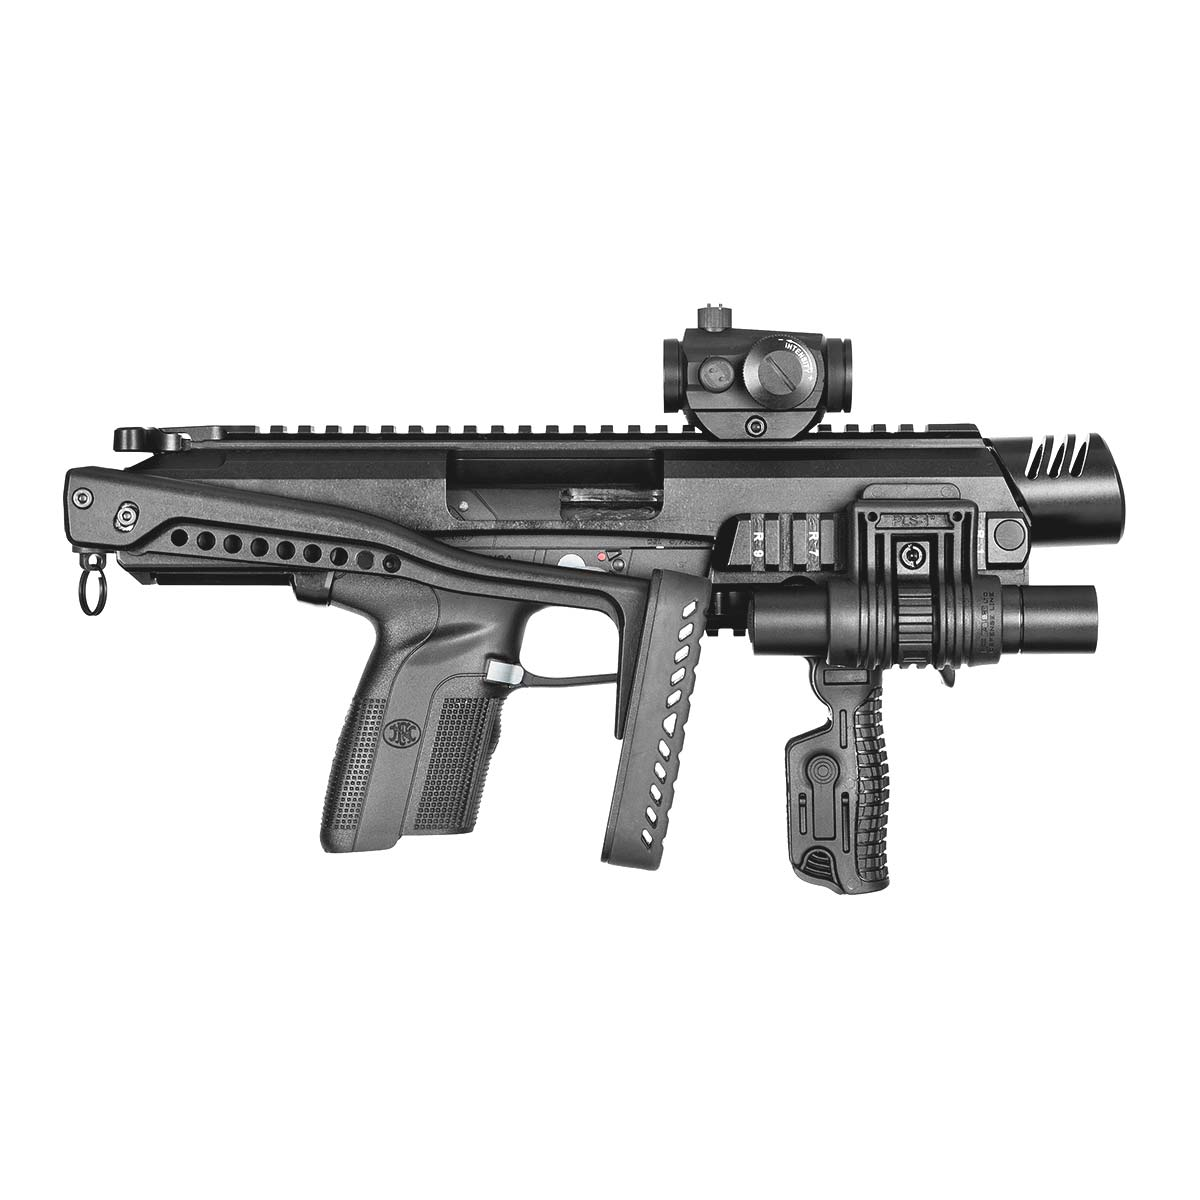 fab-defense-kpos-g2-pdw-conversion-kit-fn-57-1